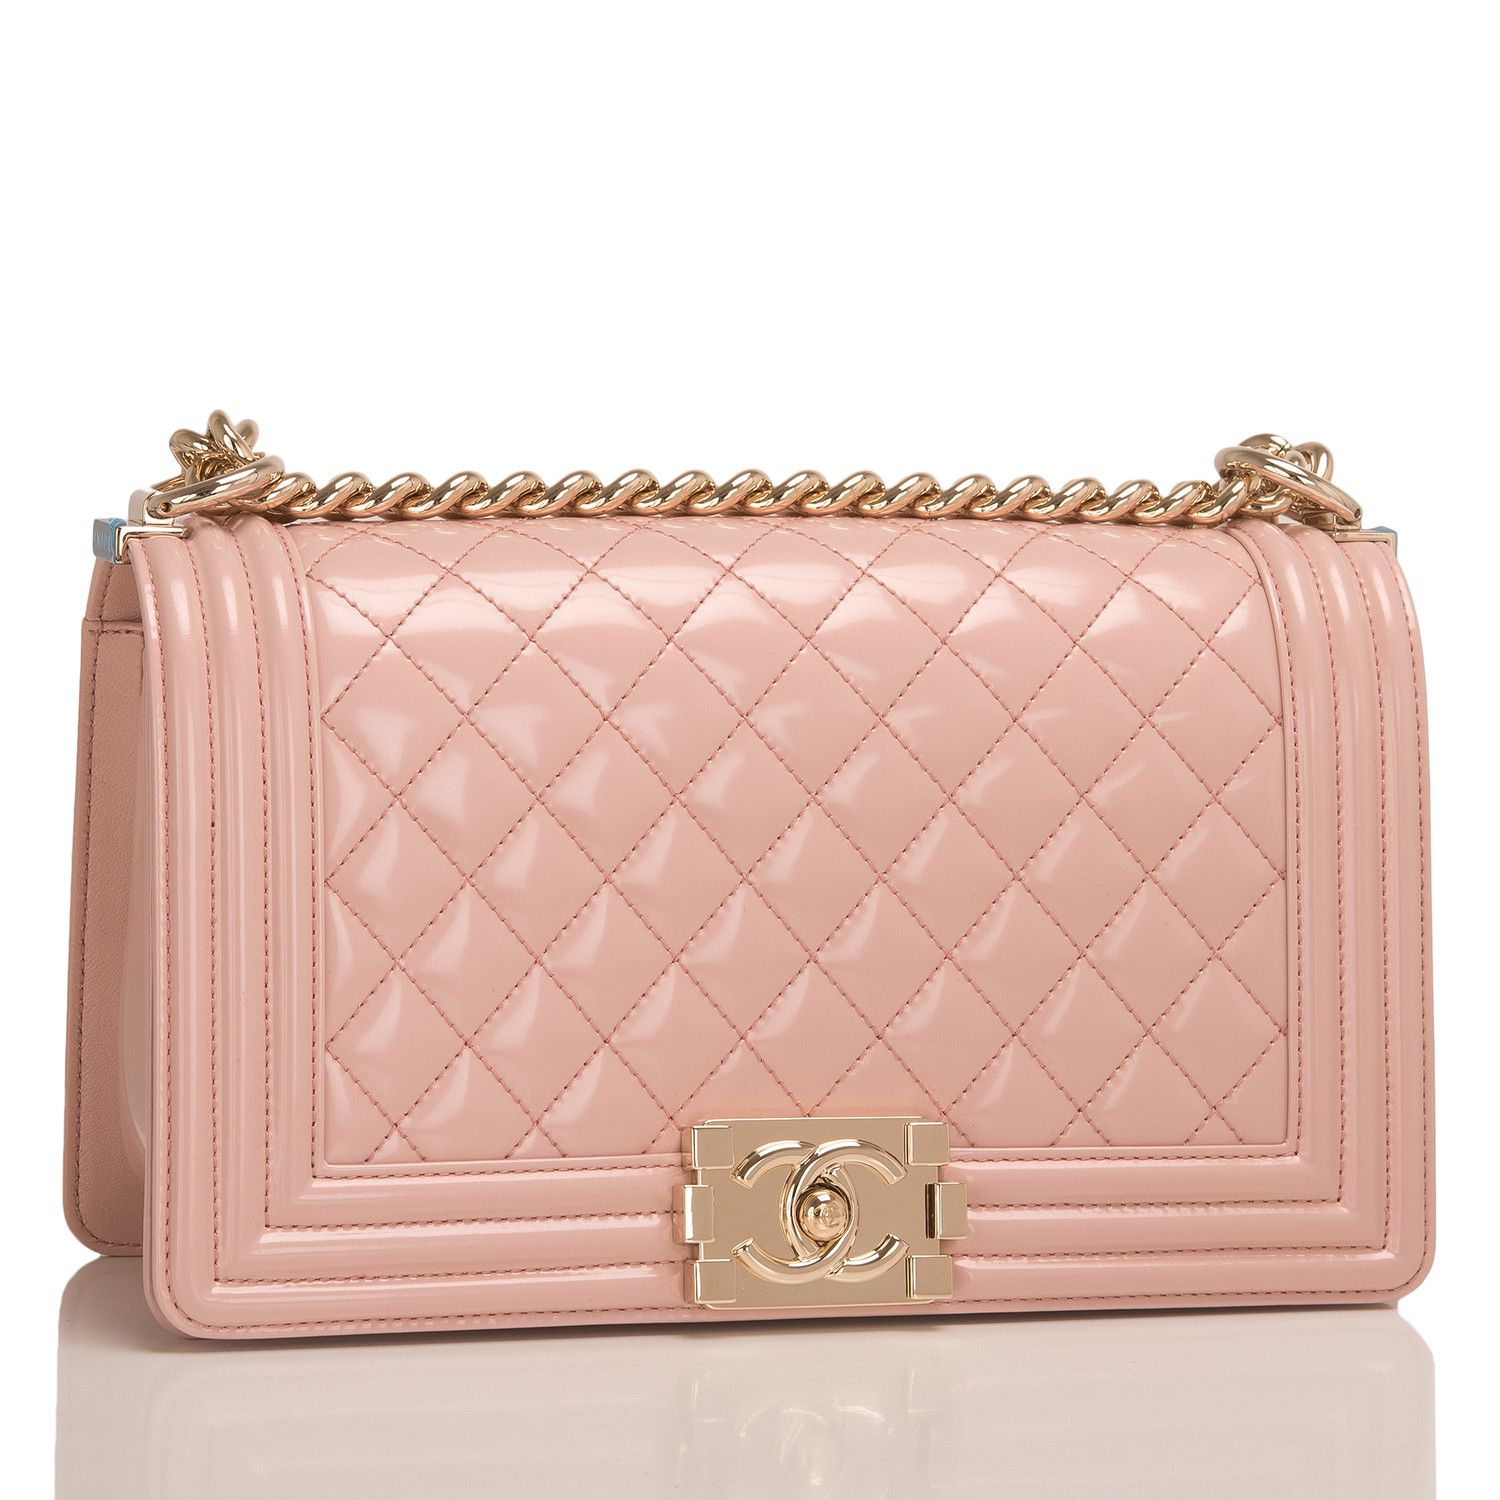 Chanel light pink iridescent patent Medium Boy bag with light gold tone  hardware in pristine condition. Shop authentic Chanel Boy bags at Madison  Avenue ...